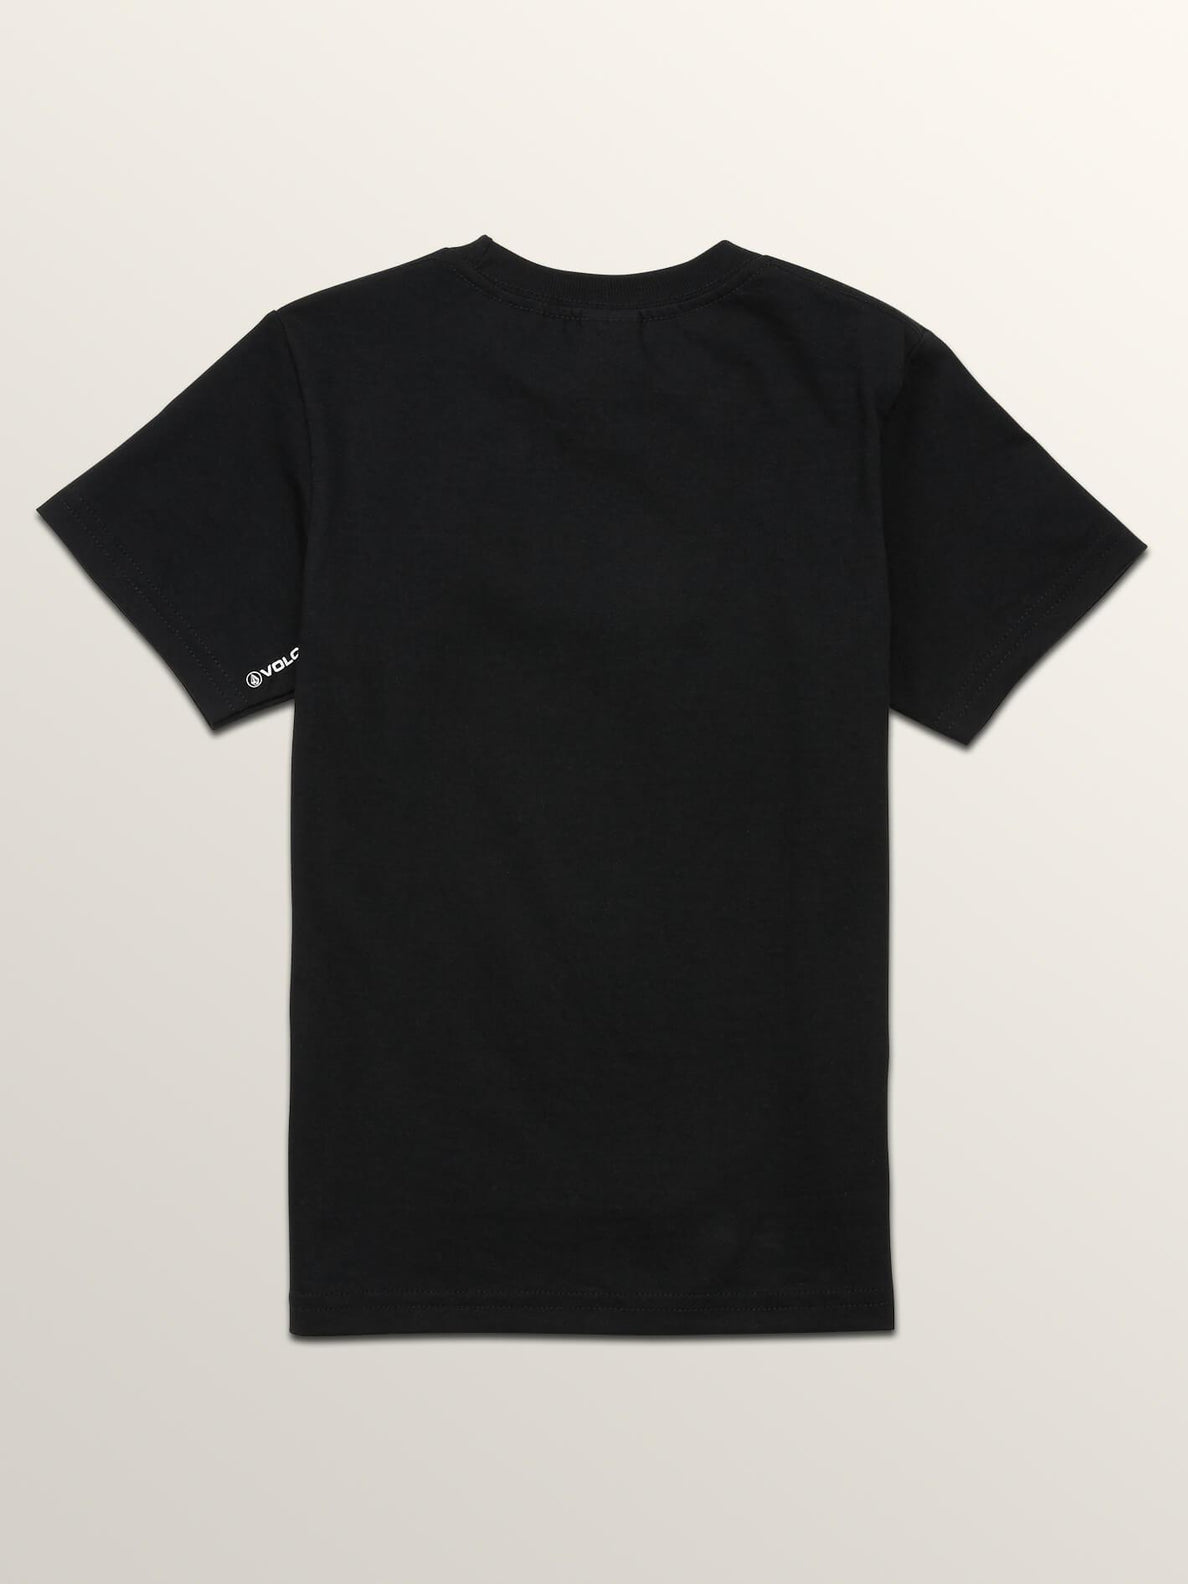 Little Boys Stonar Waves Short Sleeve Tee In Black, Back View